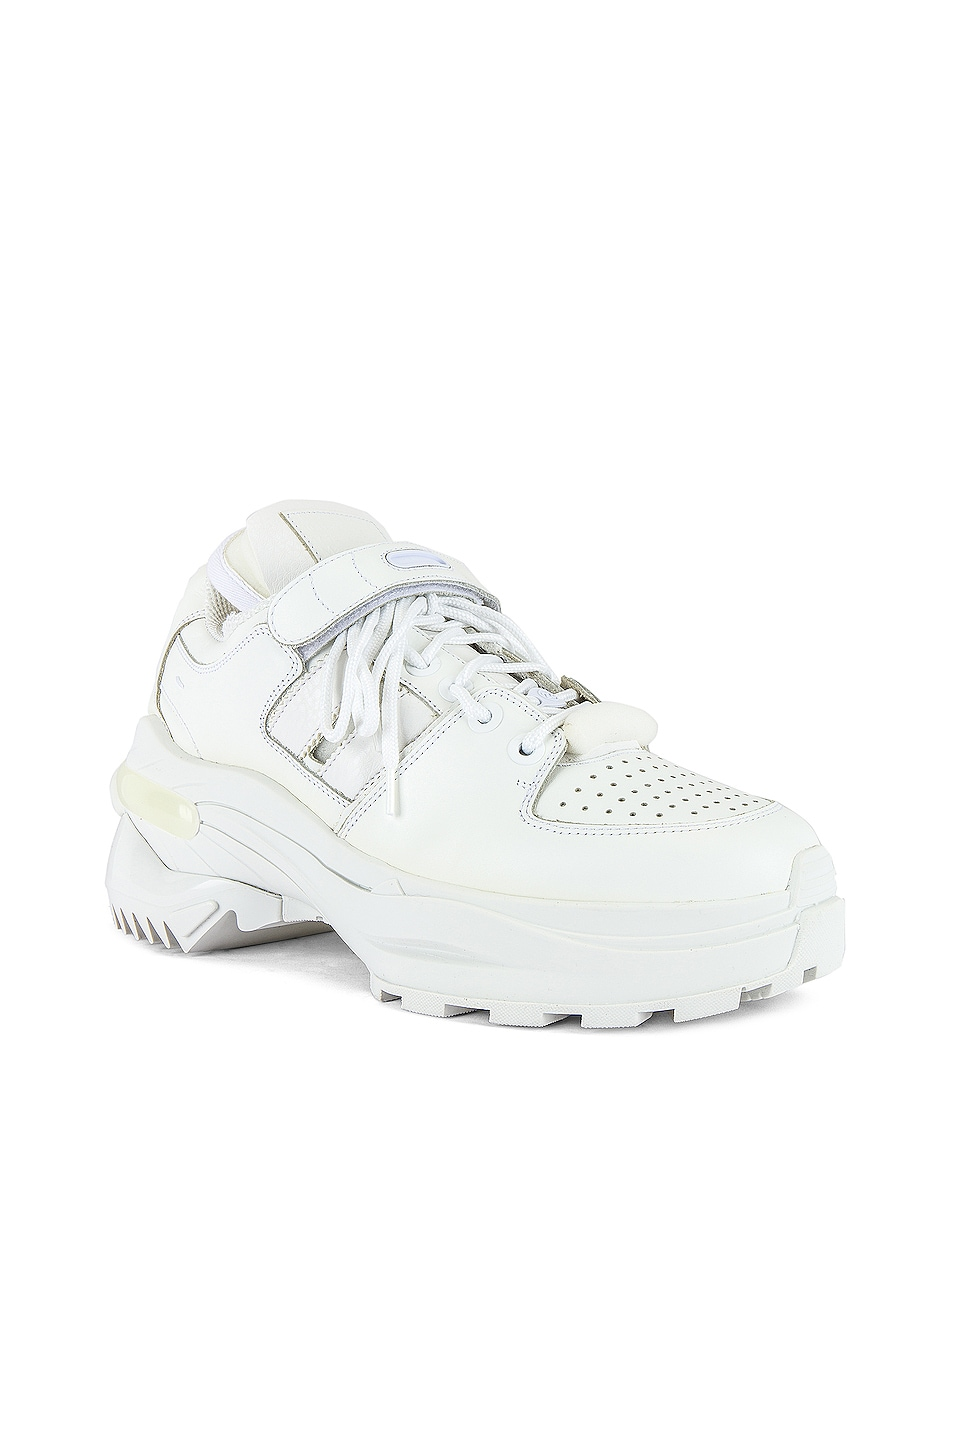 Image 1 of Maison Margiela Union Retro Fitt in White Mix